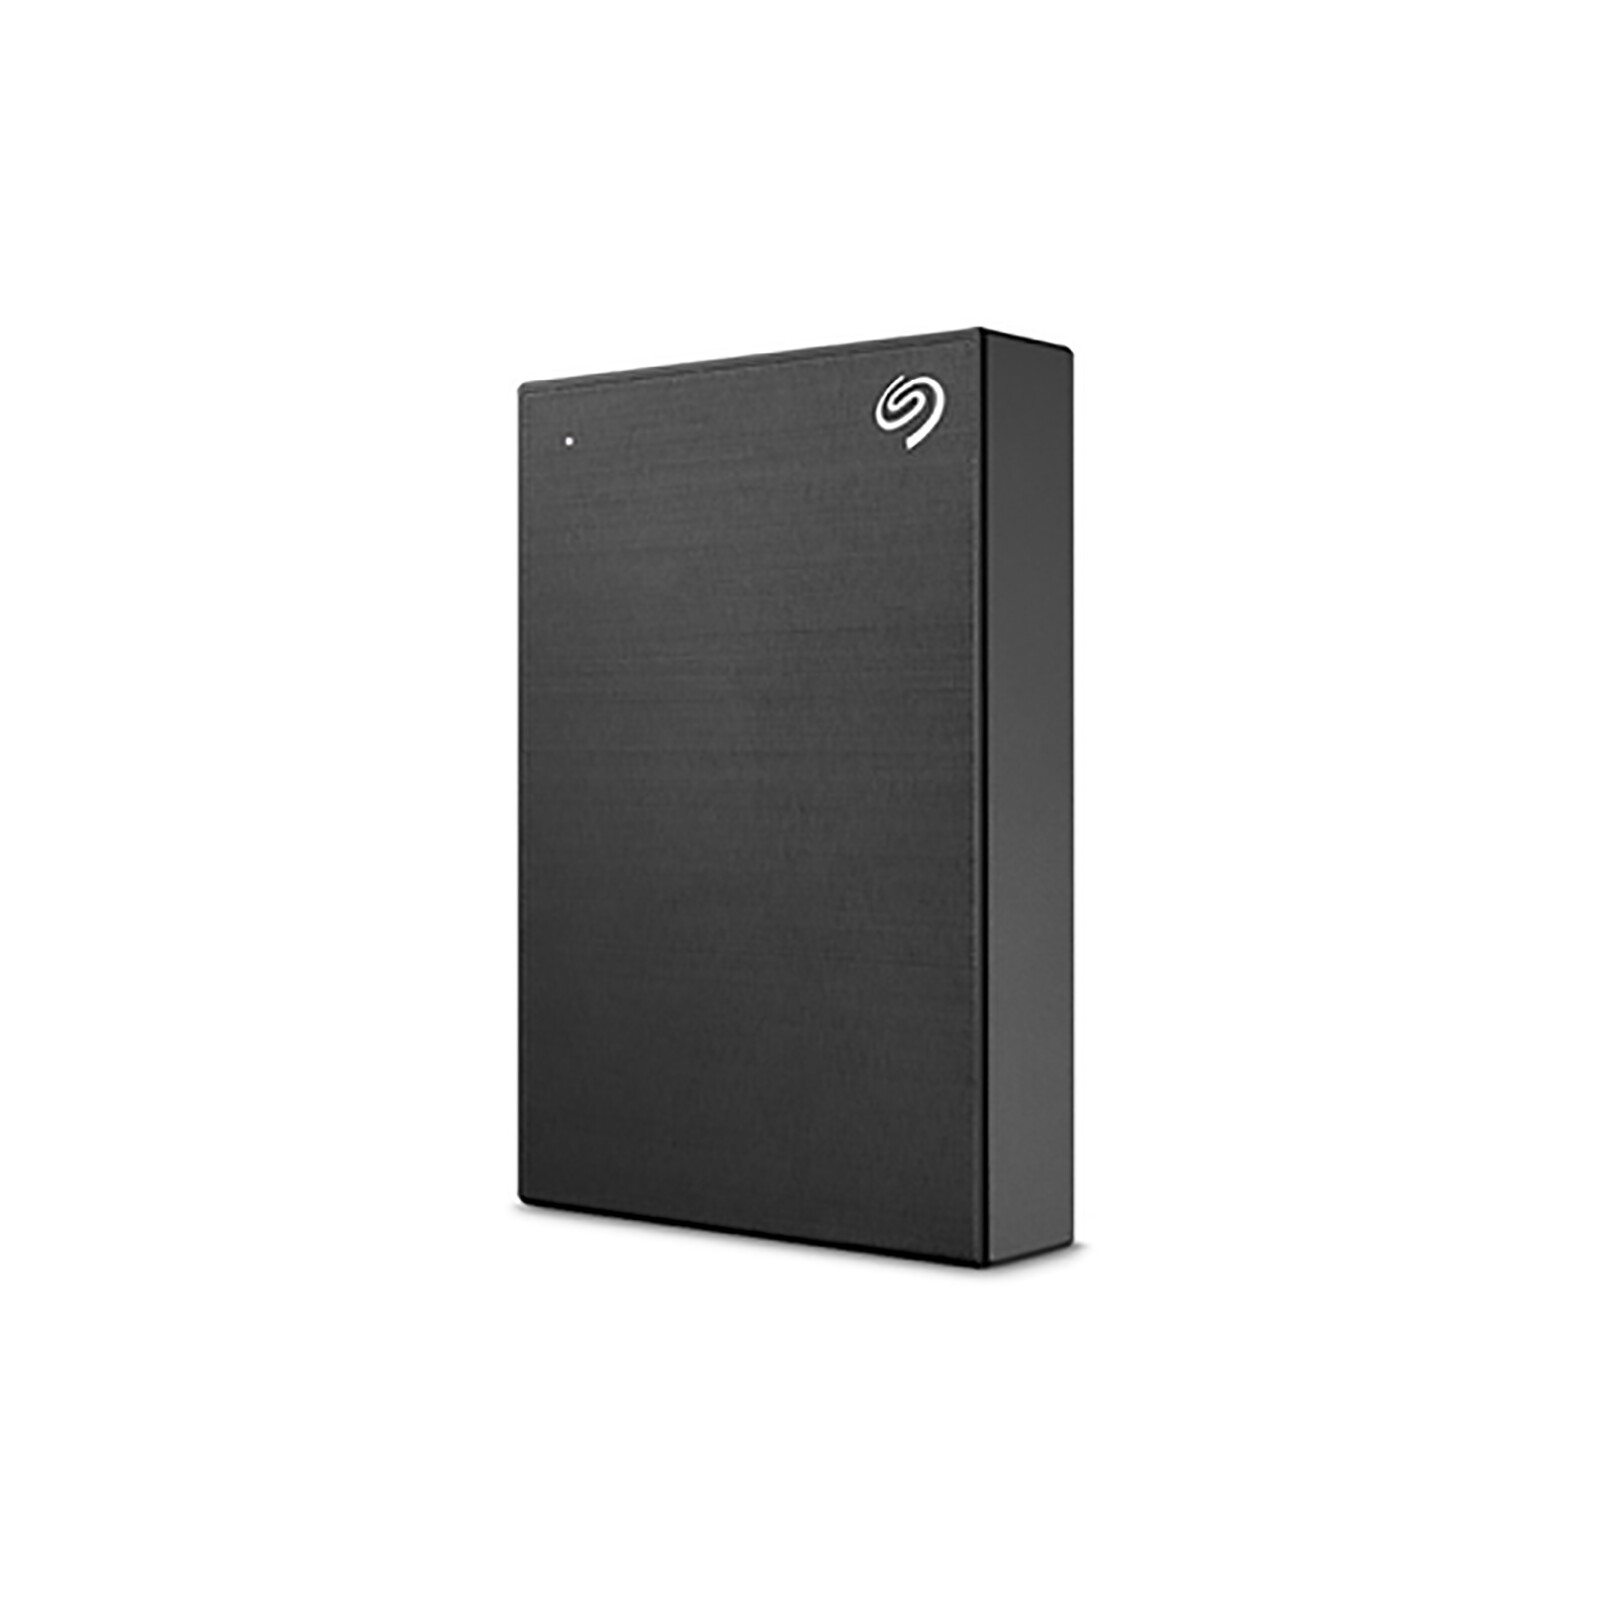 Seagate One Touch 1TB USB 3 black